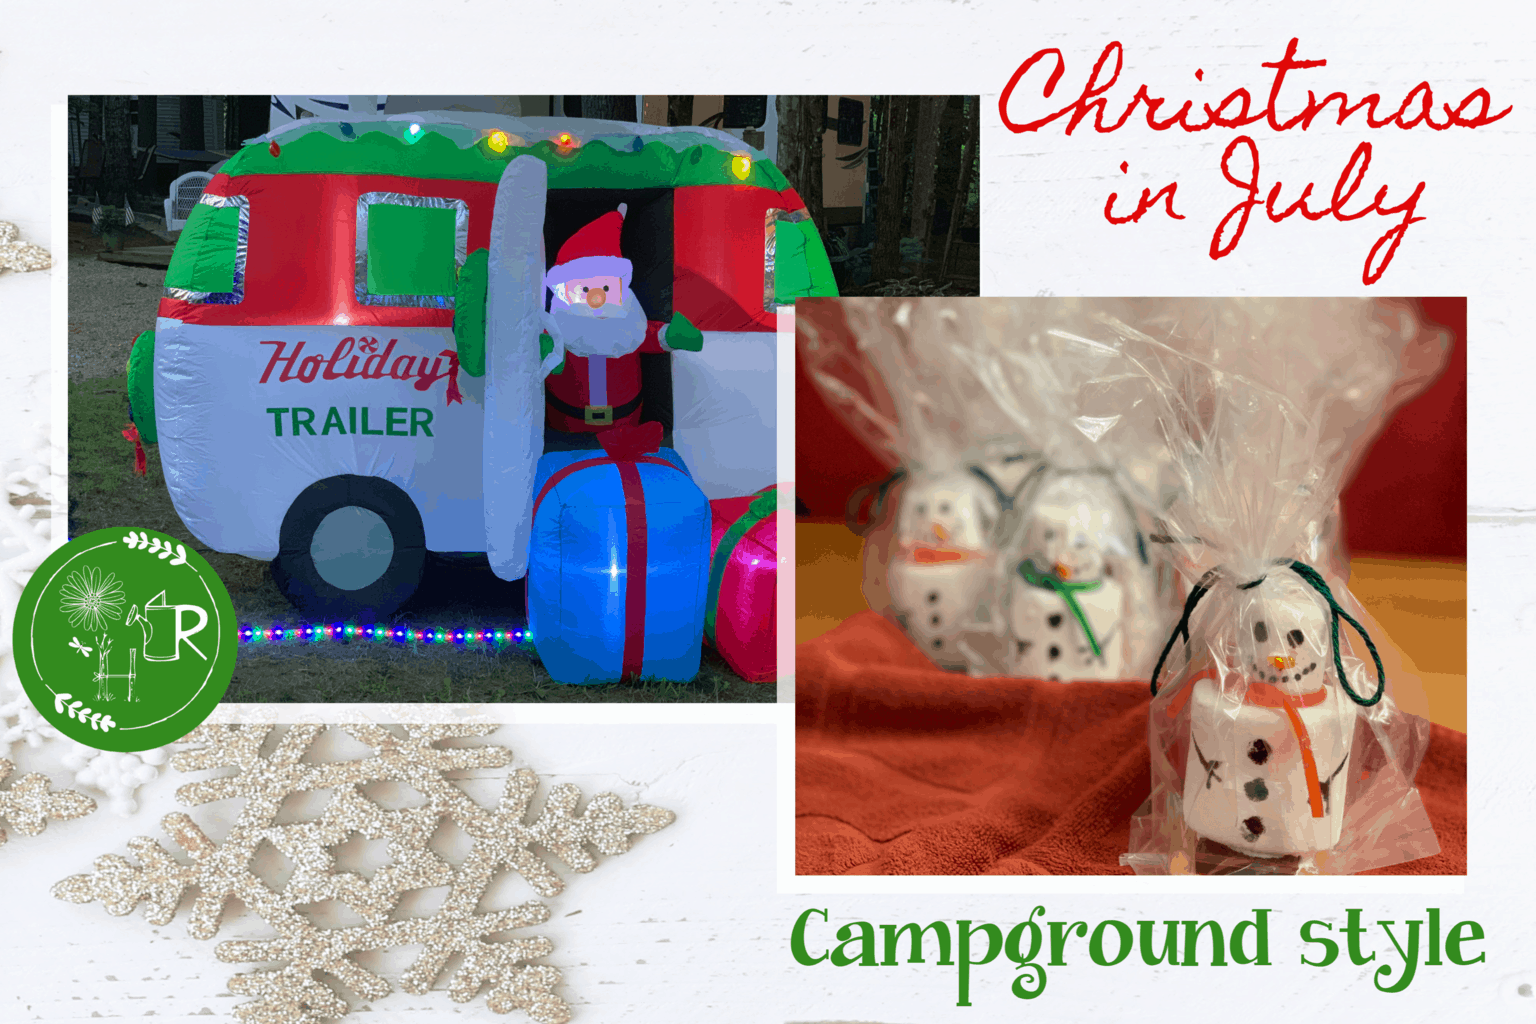 Camping Christmas In July Ideas.Christmas In July Campground Style Our Re Purposed Home